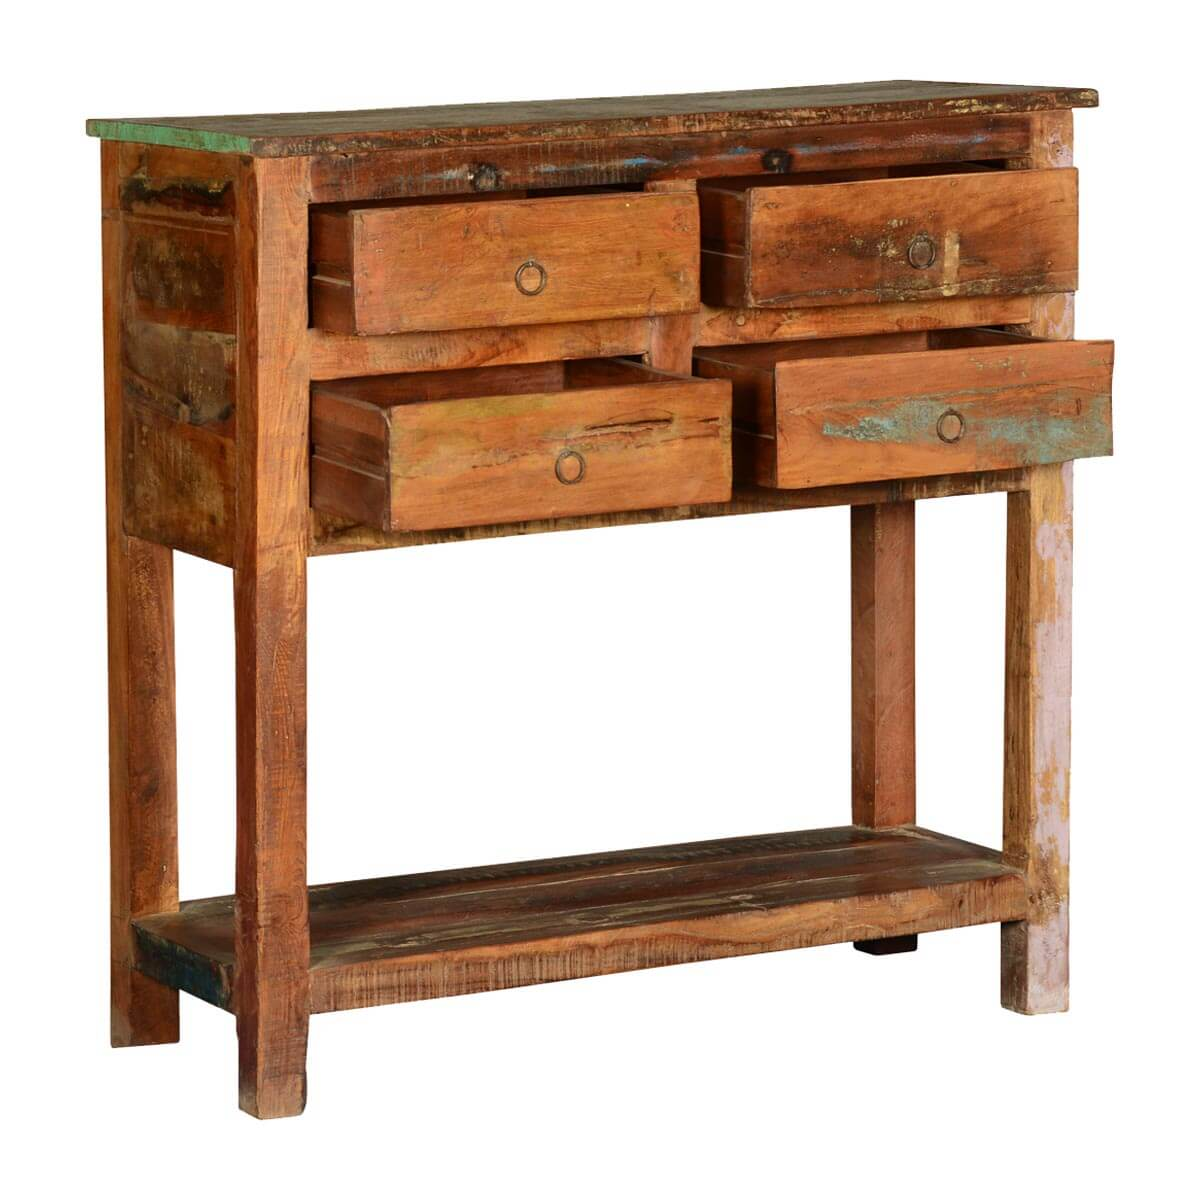 Frontier rustic reclaimed wood hall console table w drawers for Hall console table